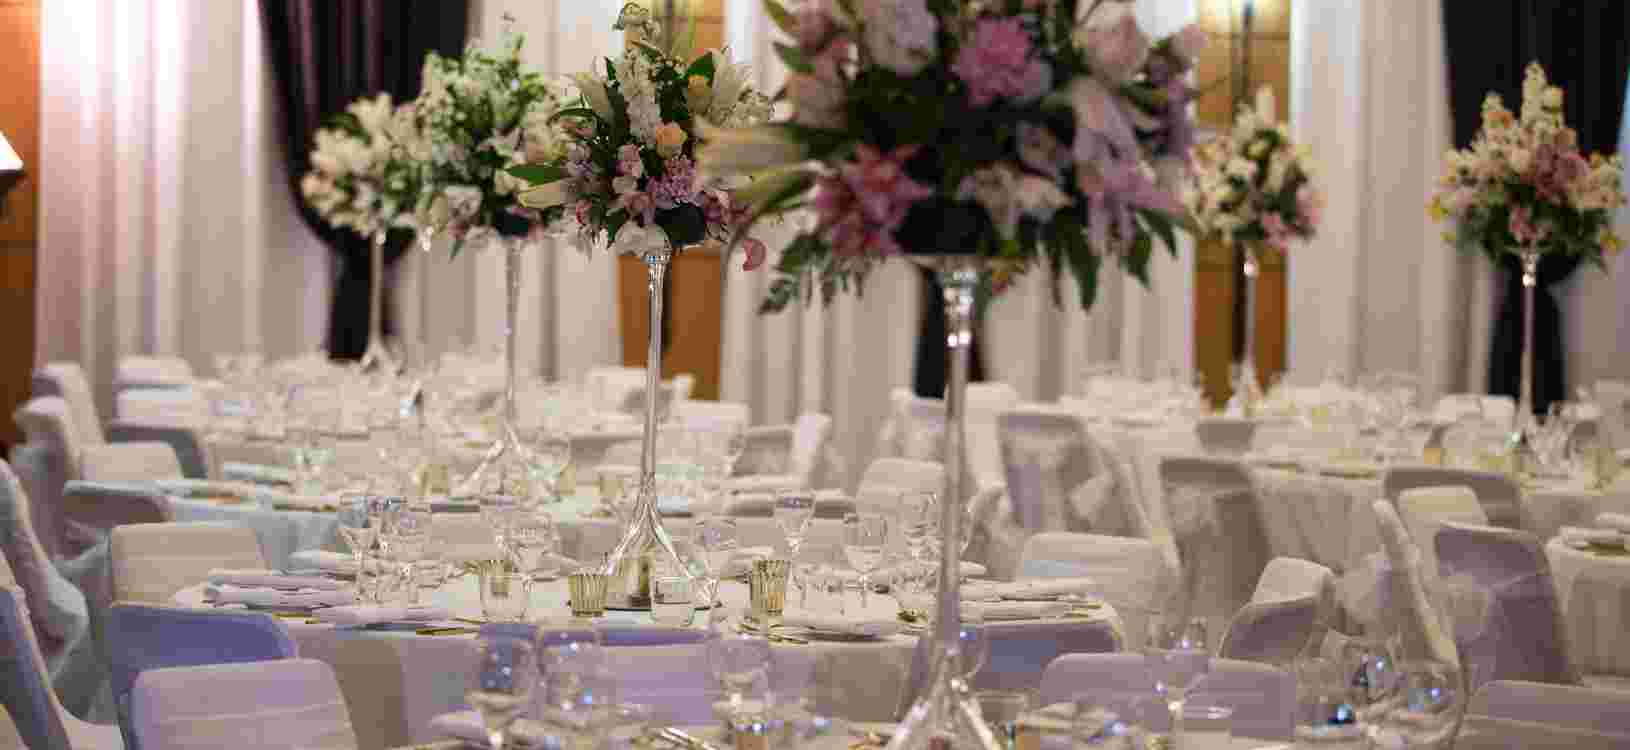 Wedding Grand Ballroom Flowers